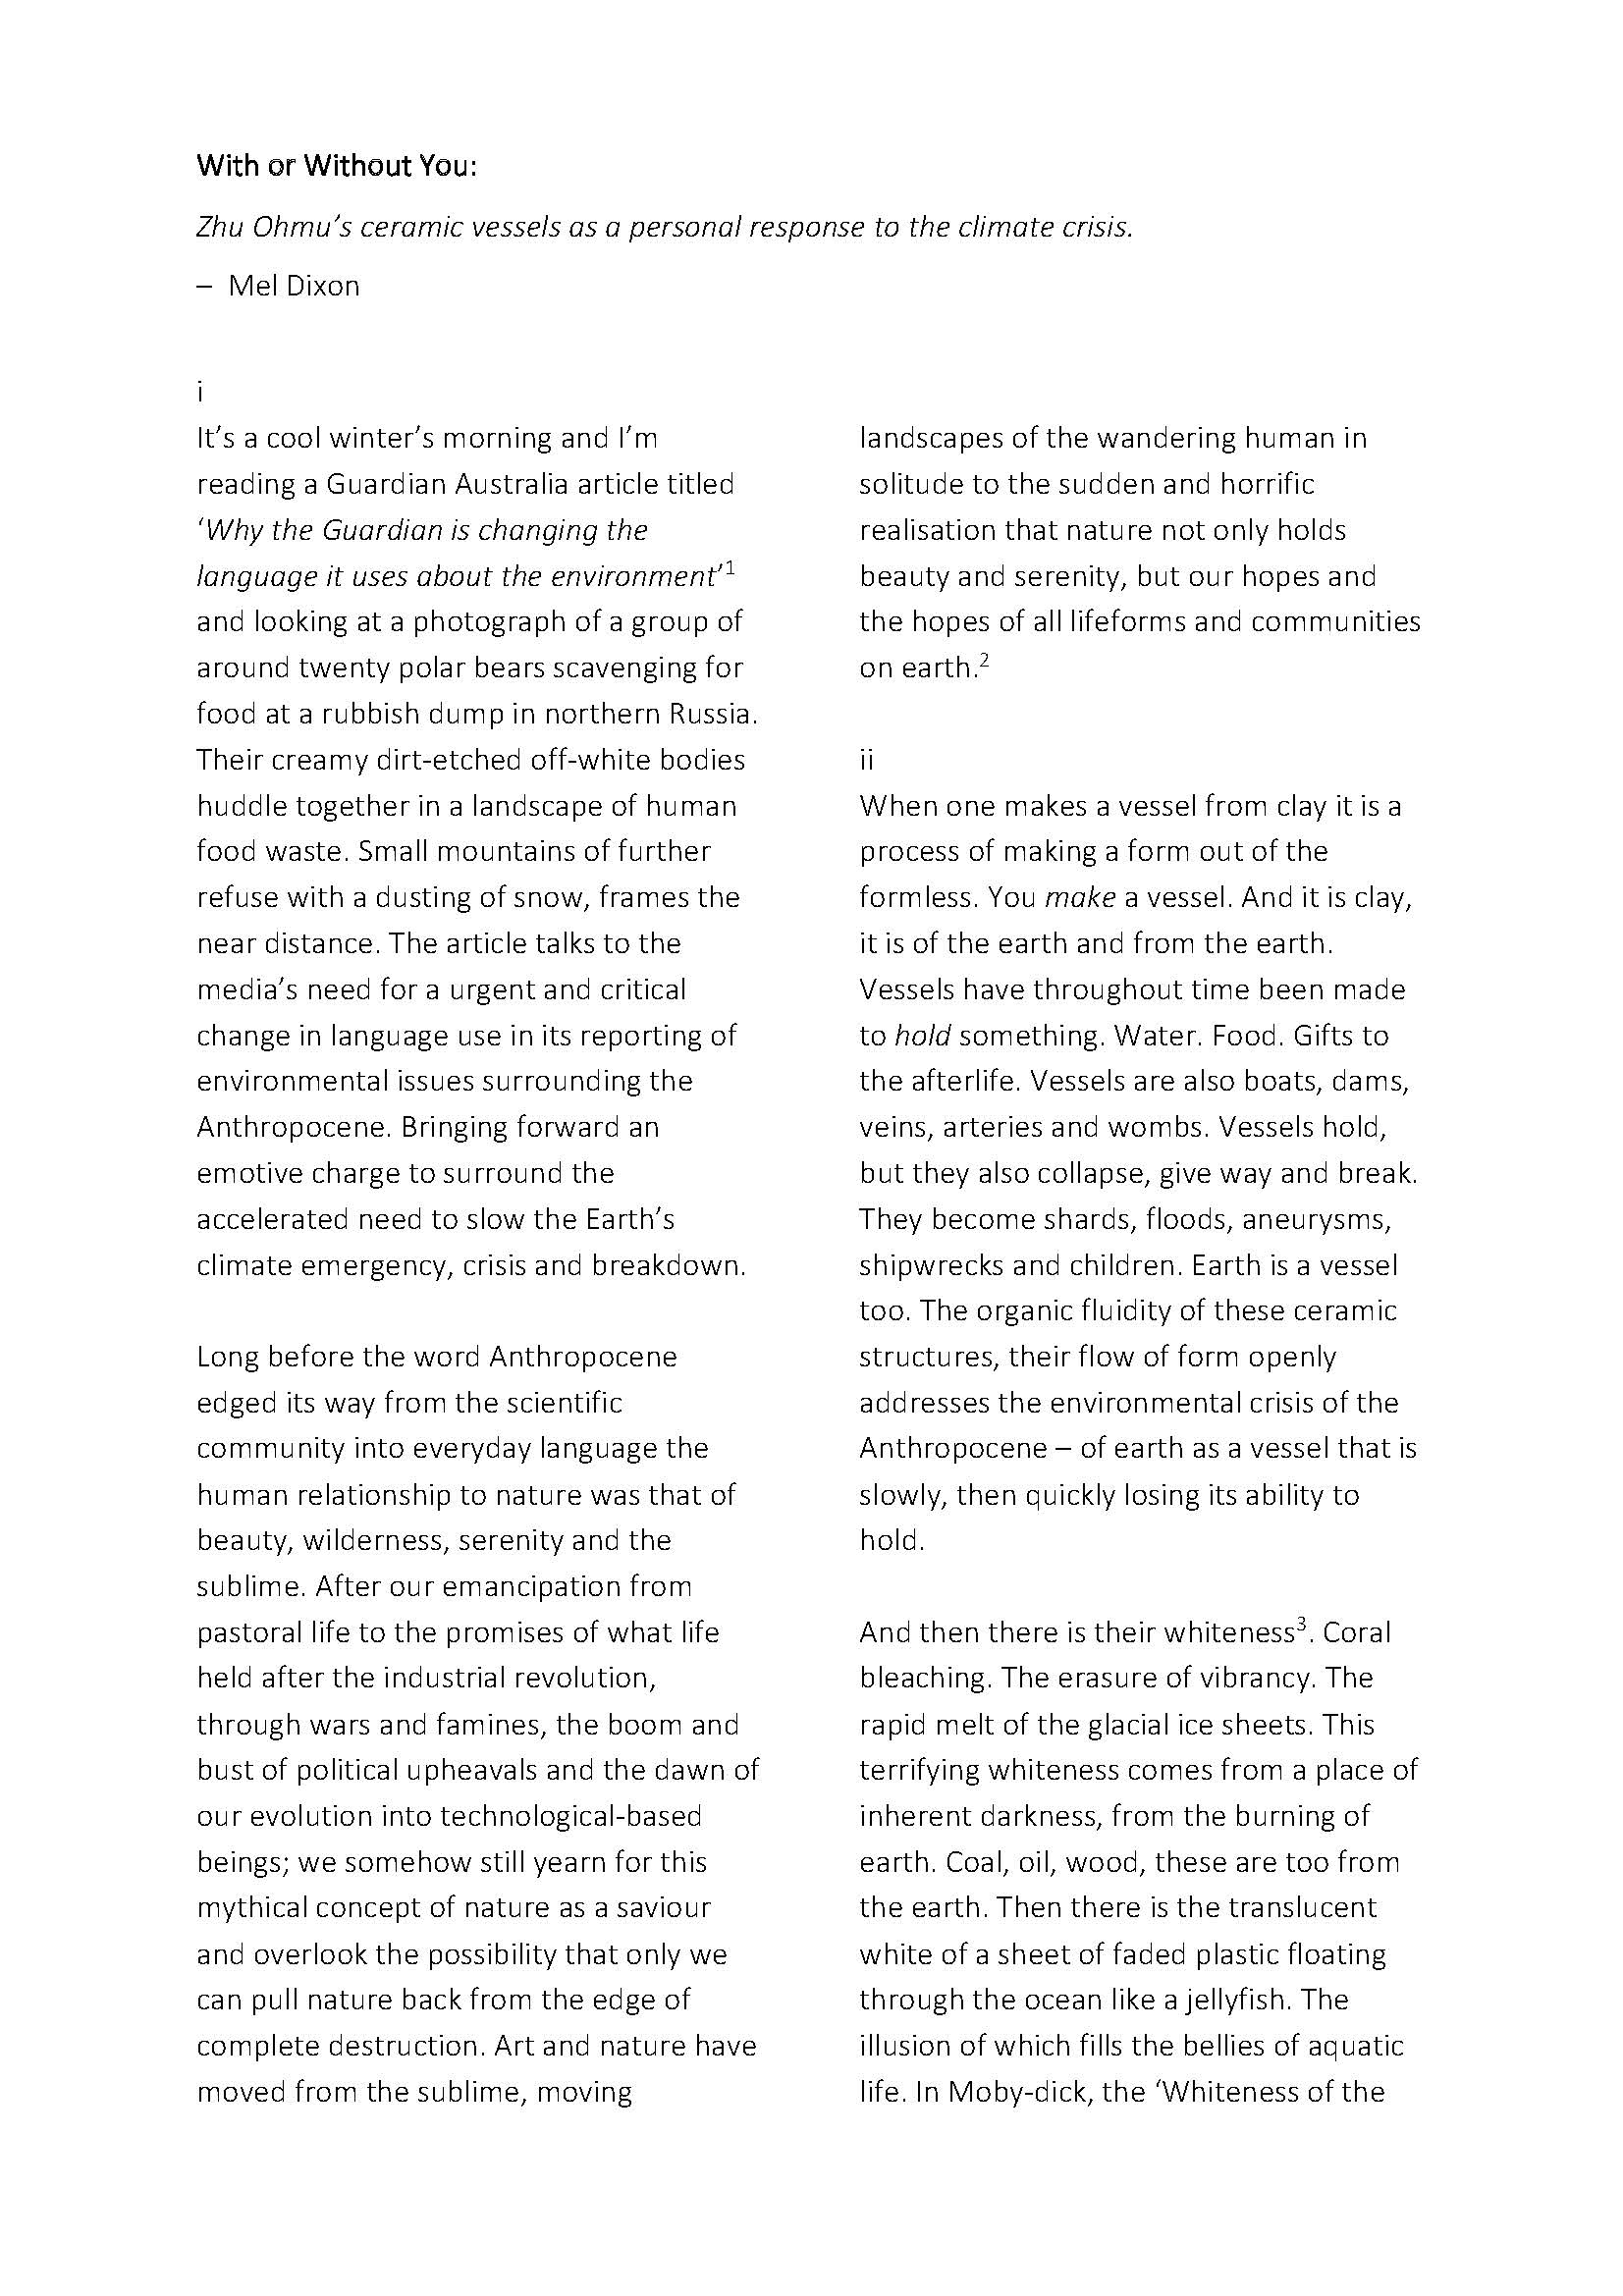 With or Without you - Zhu Ohmu exhibiton essay_Page_2.jpg